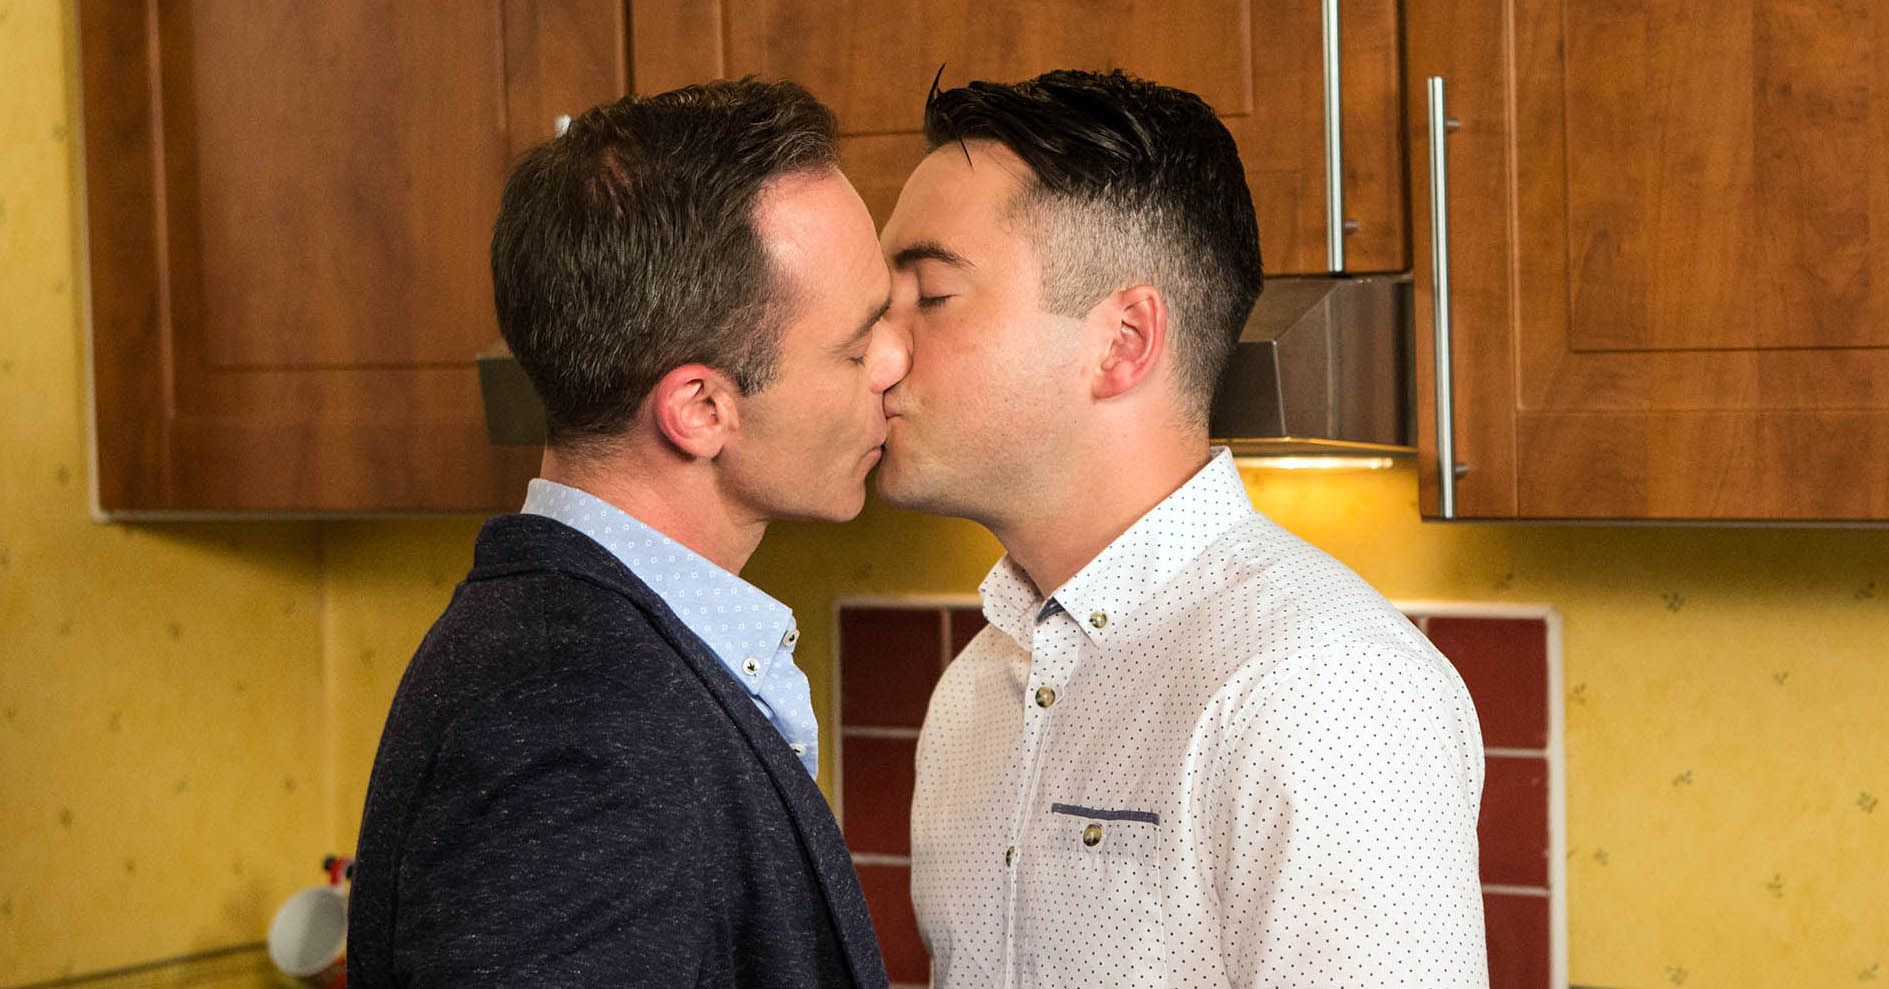 Billy Mayhew and Todd Grimshaw in Coronation Street